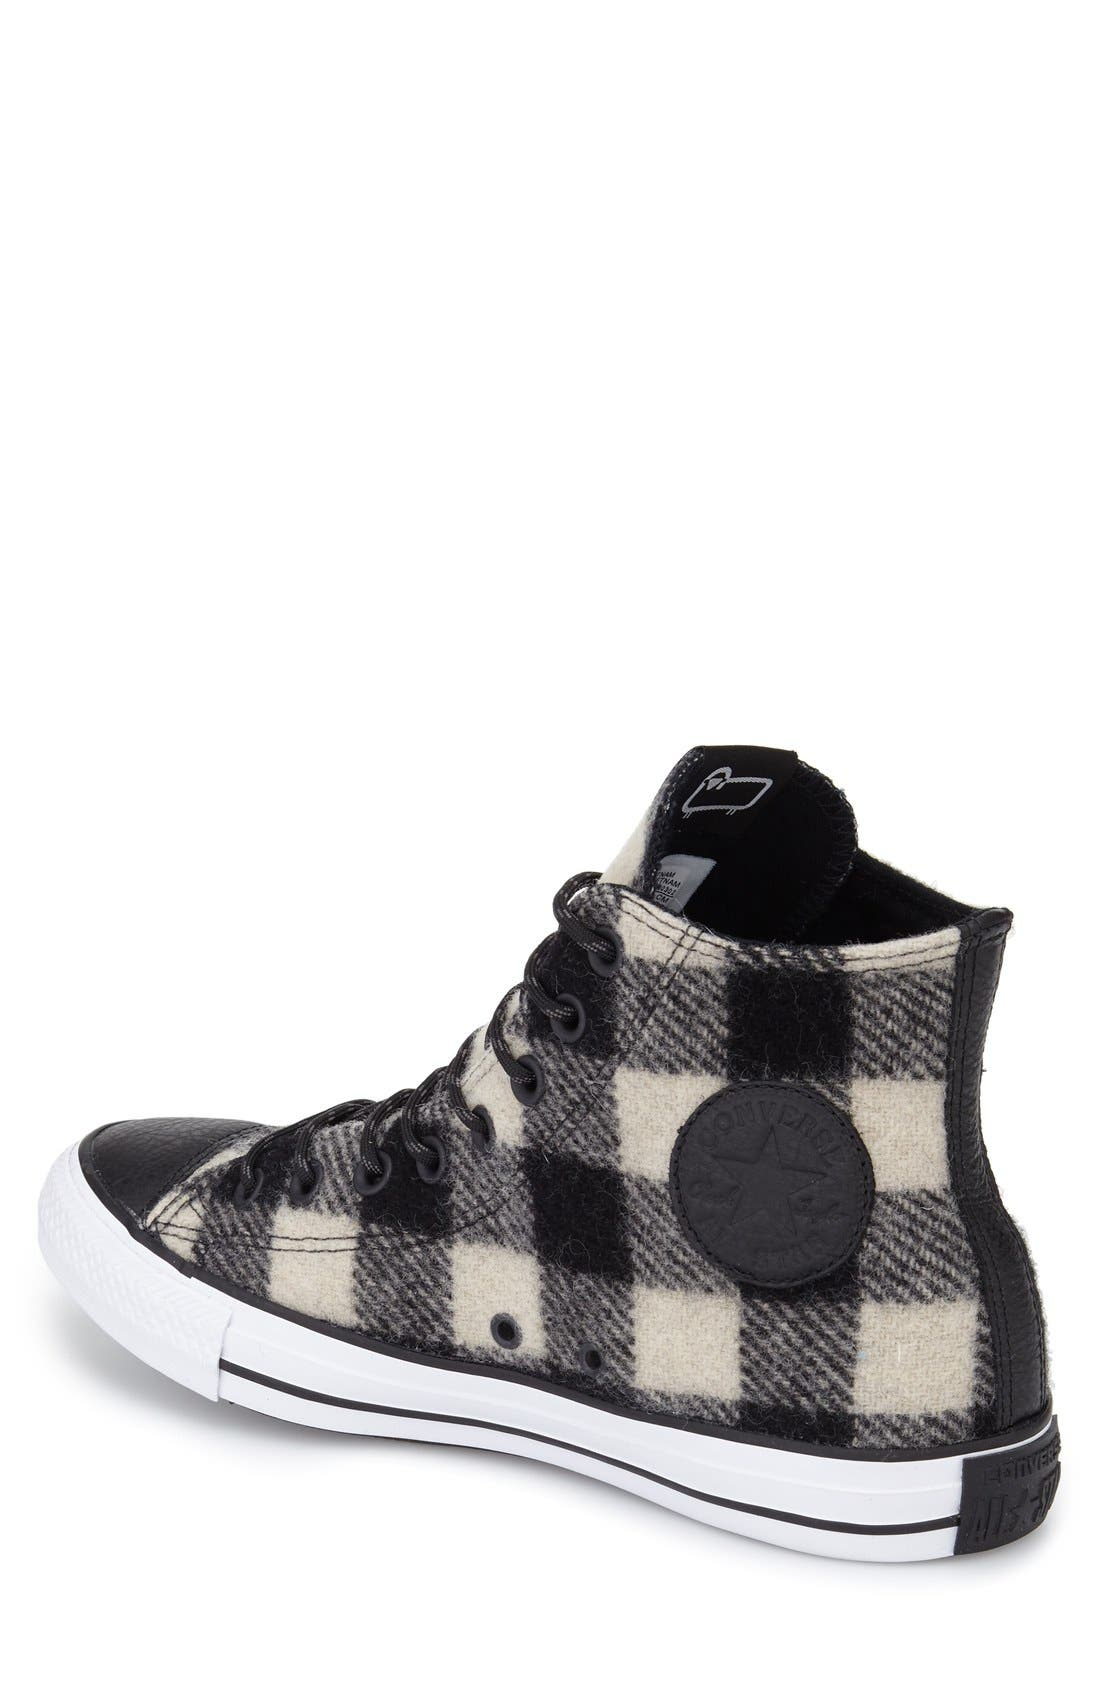 Chuck Taylor<sup>®</sup> All Star<sup>®</sup> Woolrich High Top Sneaker,                             Alternate thumbnail 3, color,                             001